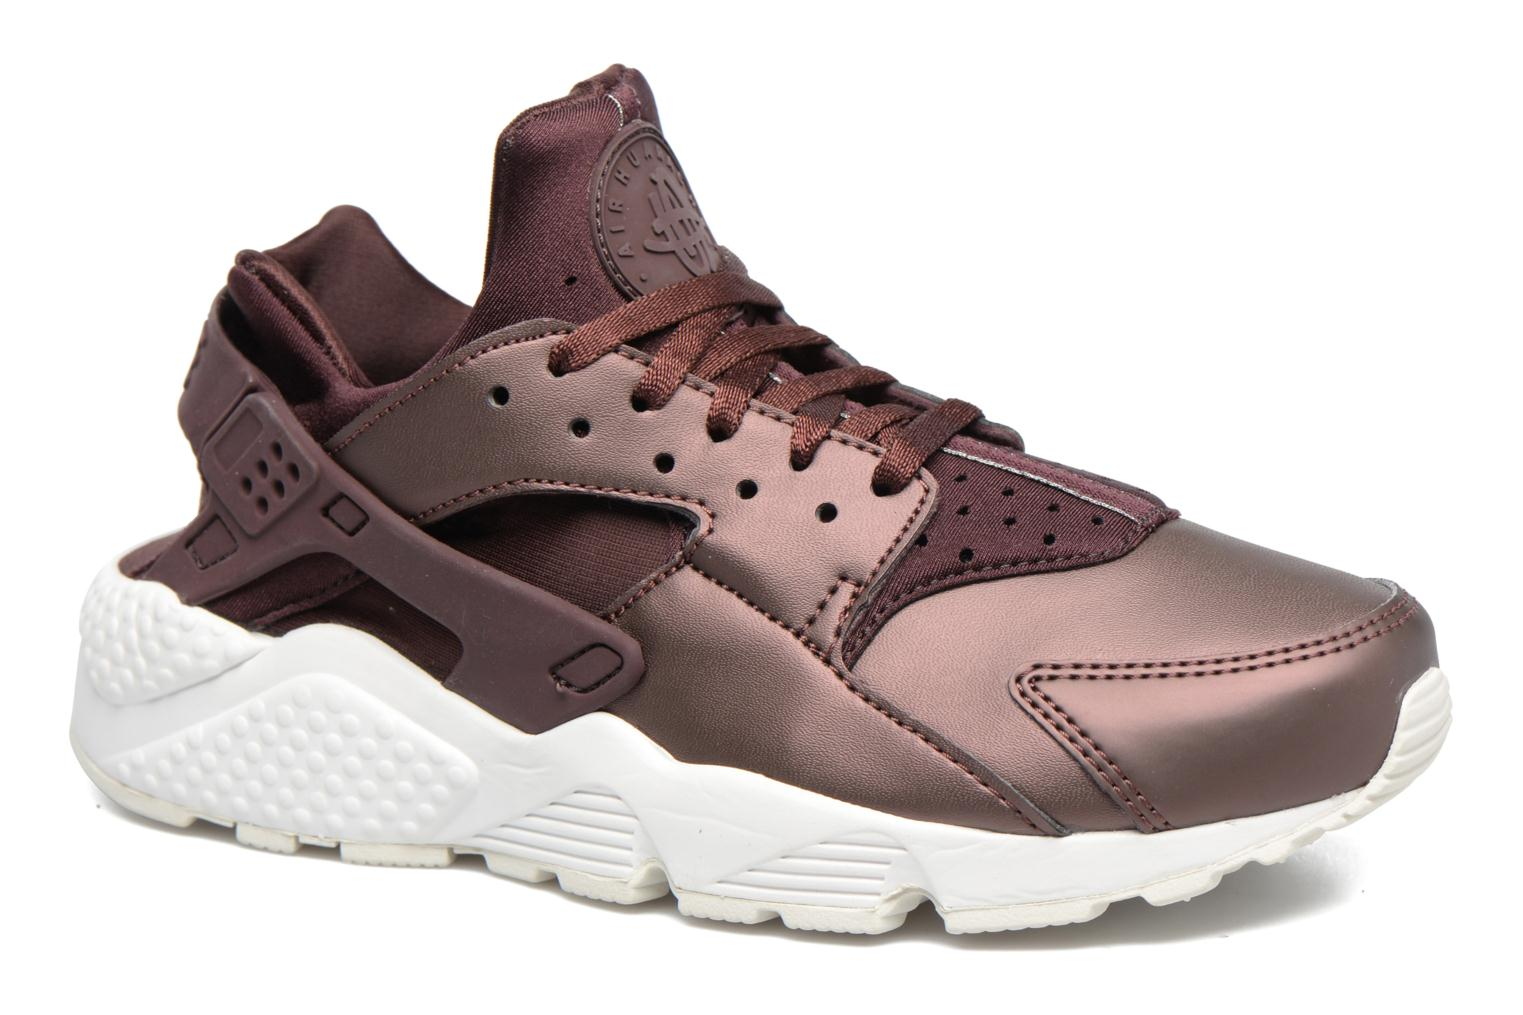 Wmns Air Huarache Run Prm Txt Mahogany/Mtlc Mahogany-Summit White